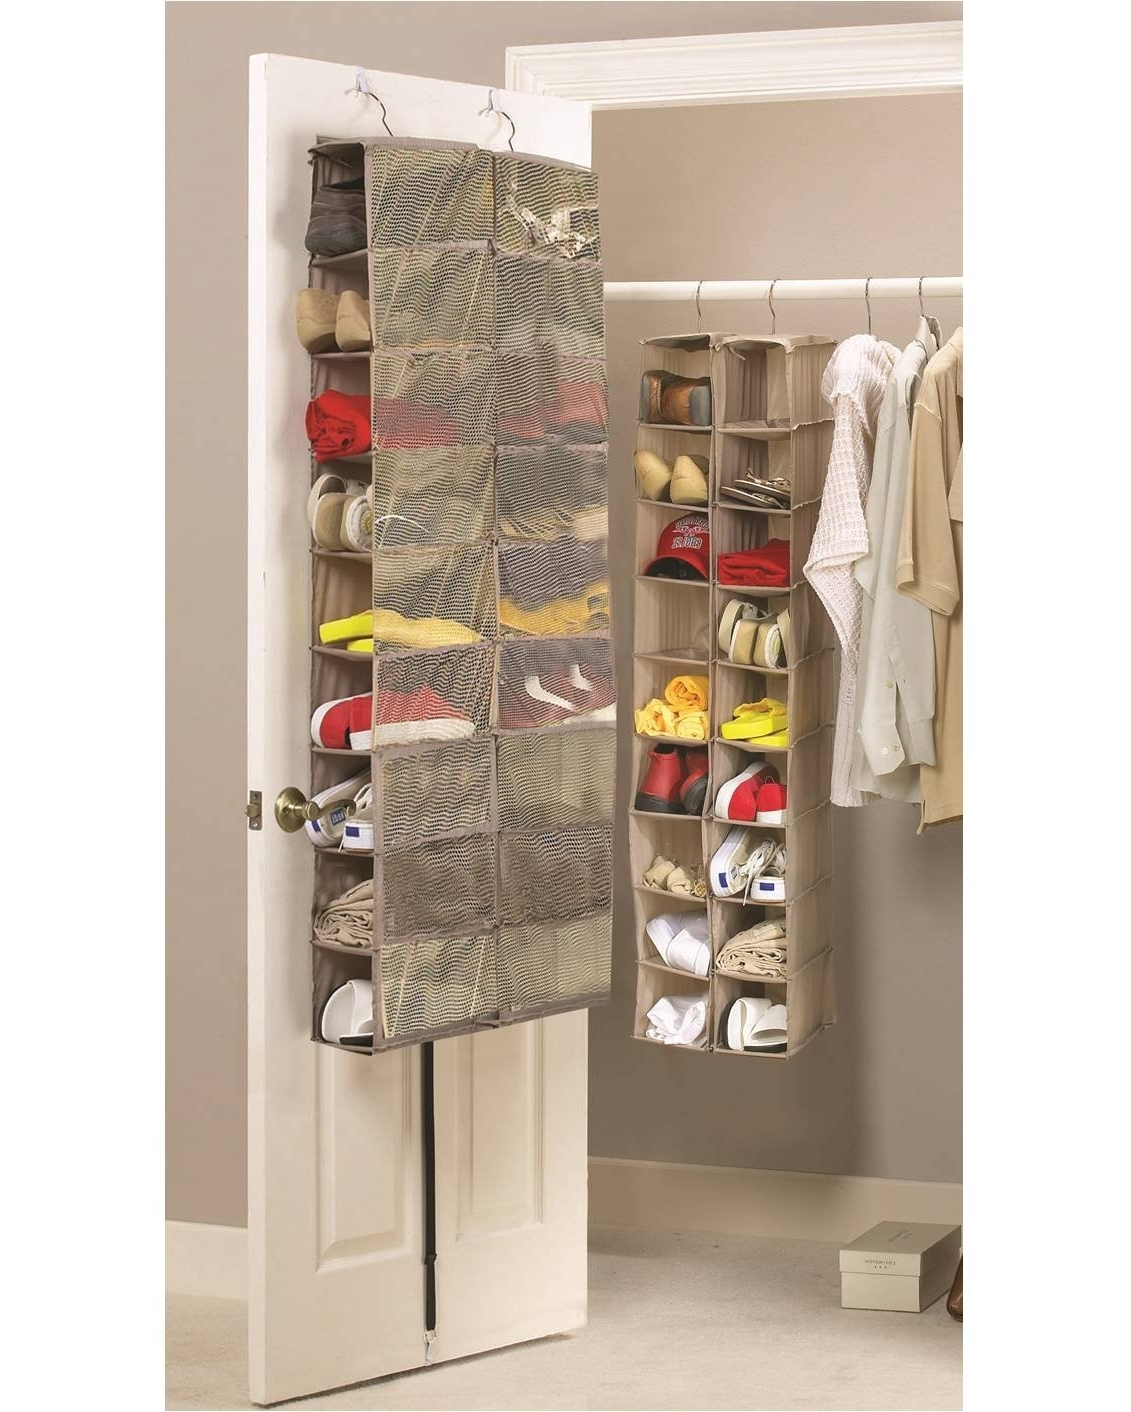 Large Heavy Duty 18 Pocket Hanging Shoe Organiser For The Wardrobe With Preferred Wardrobes Shoe Storages (View 8 of 15)